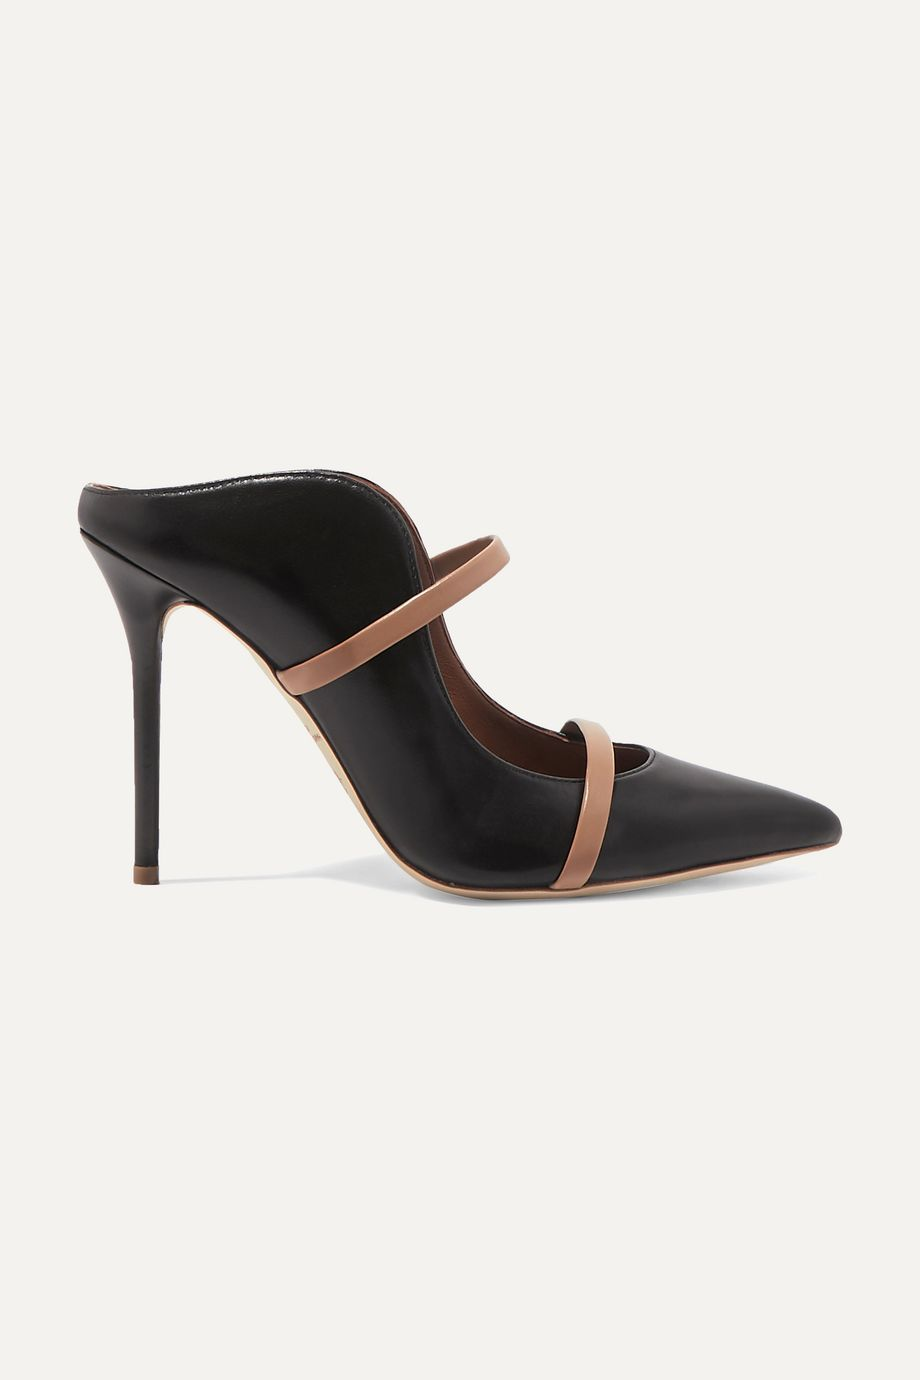 Malone Souliers Maureen 100 leather mules